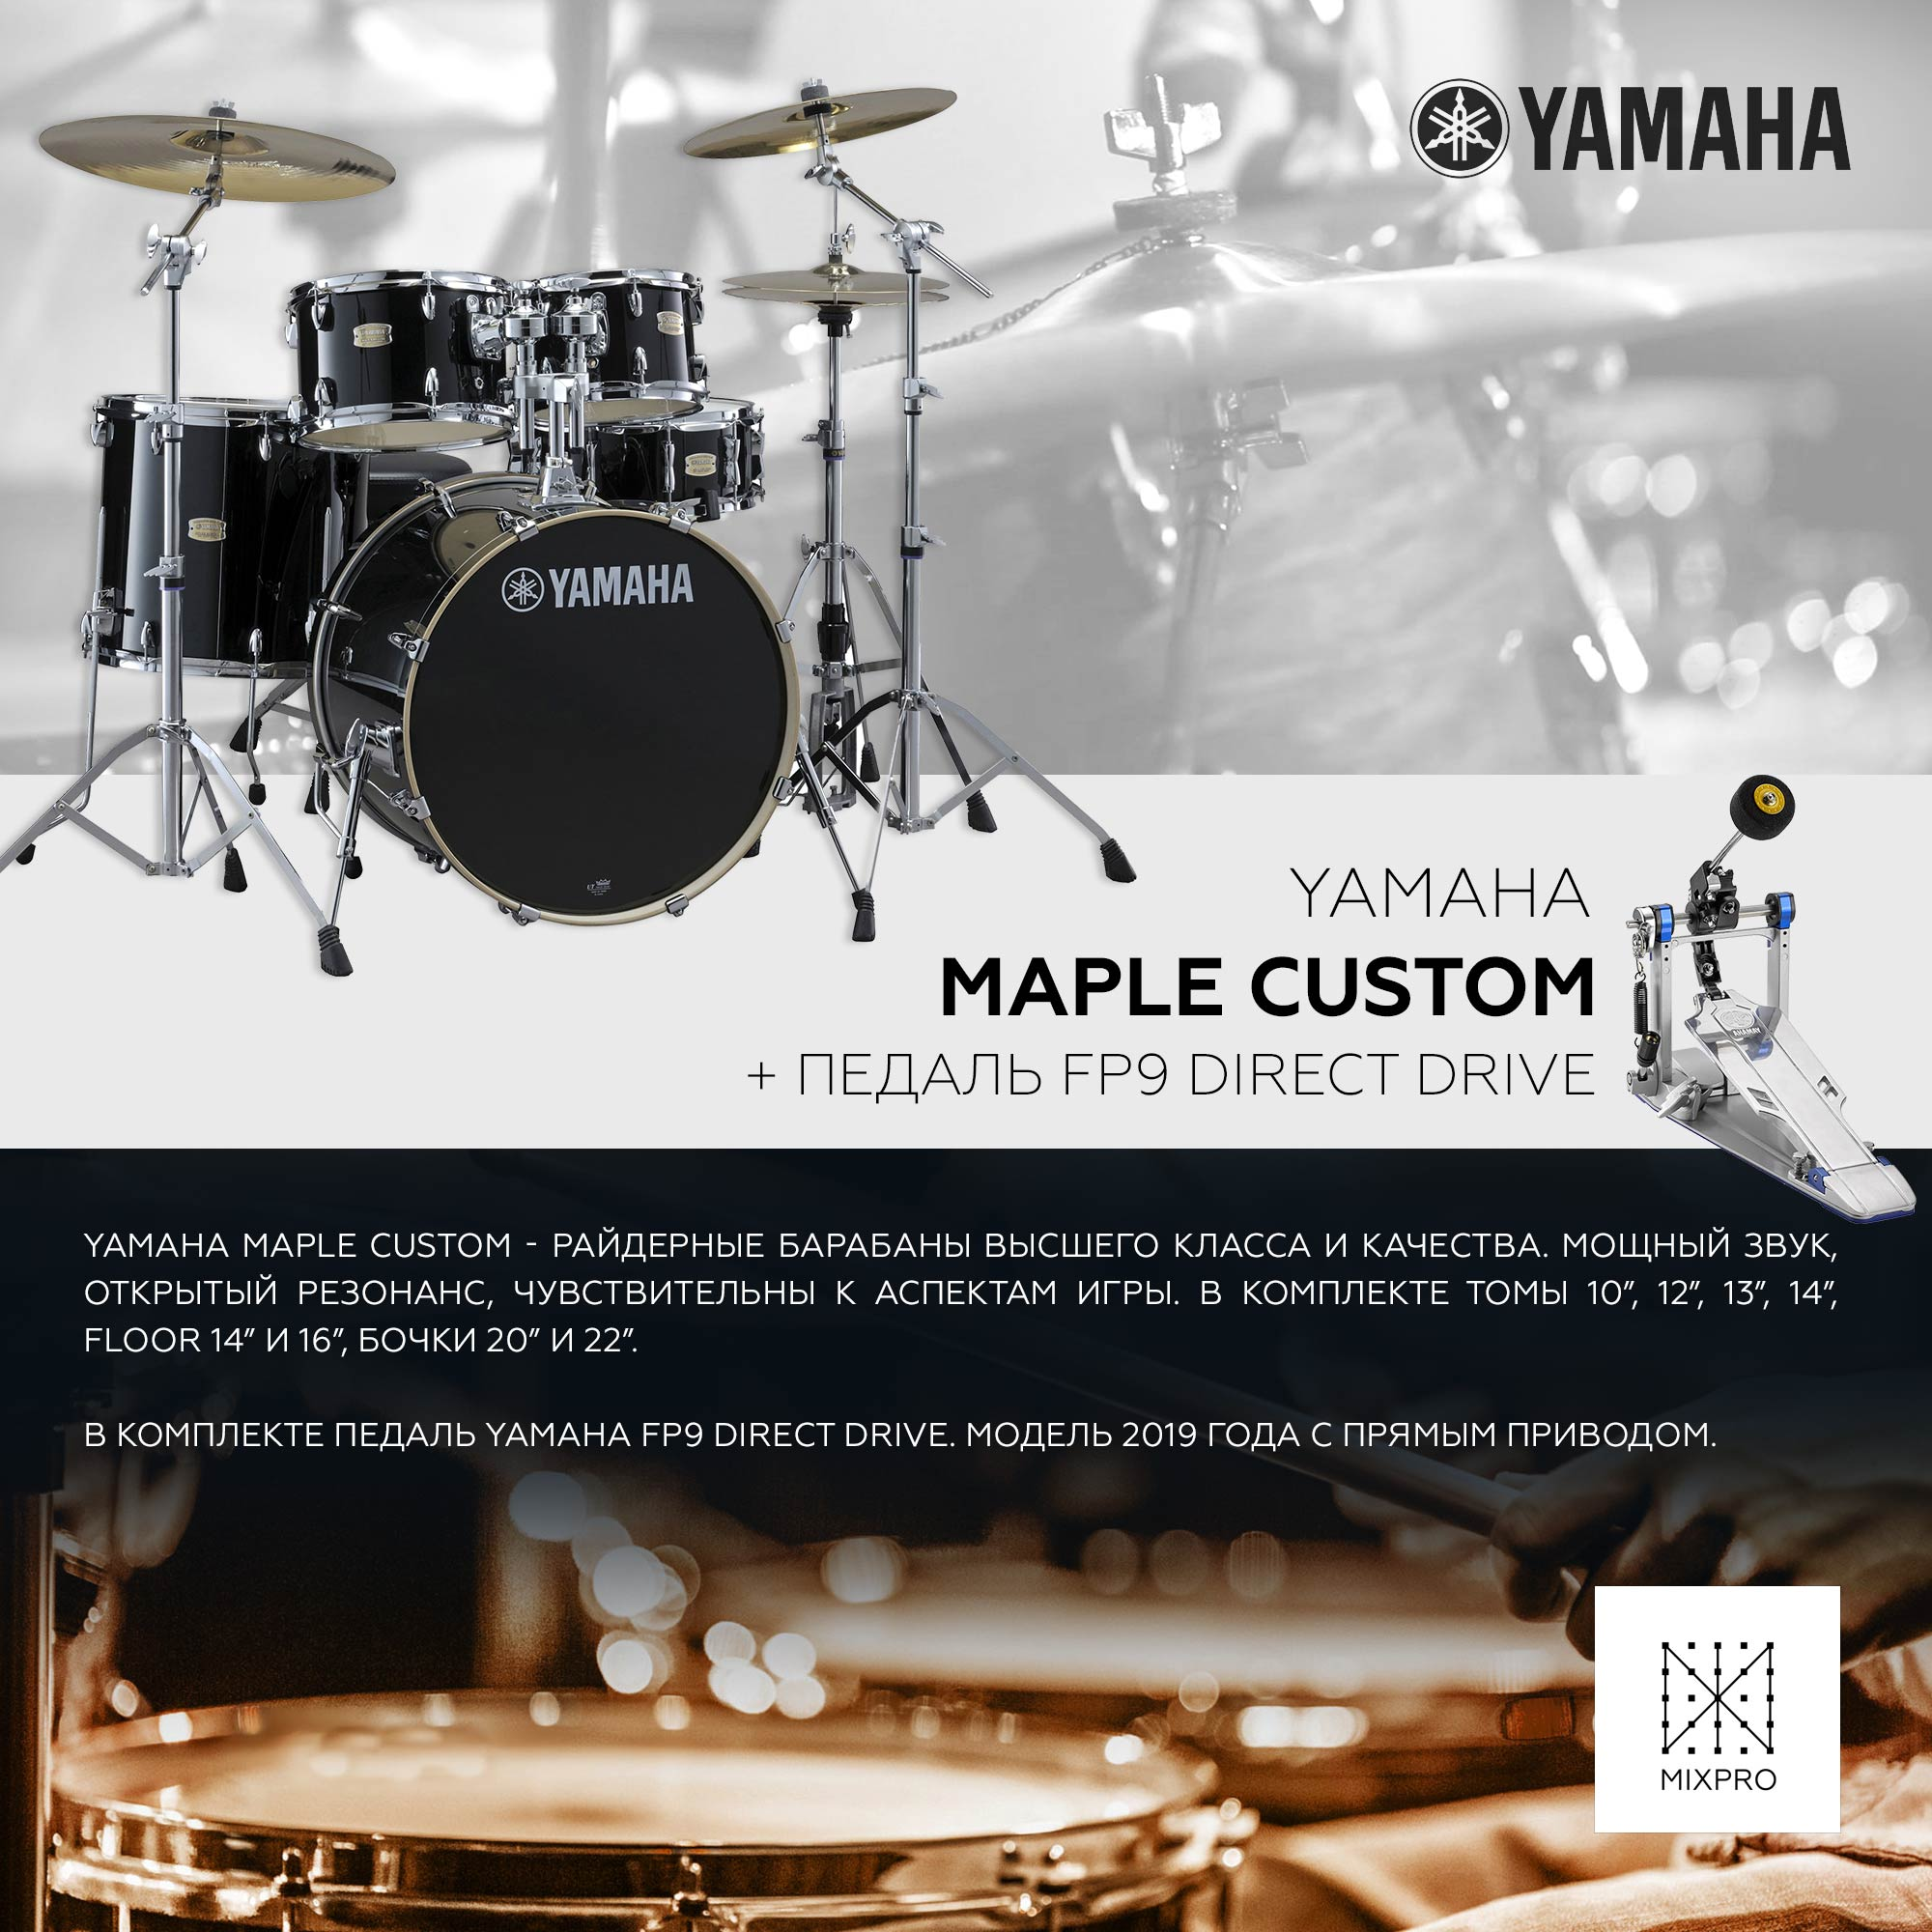 YAMAHA MAPLE CUSTOM<br><br>